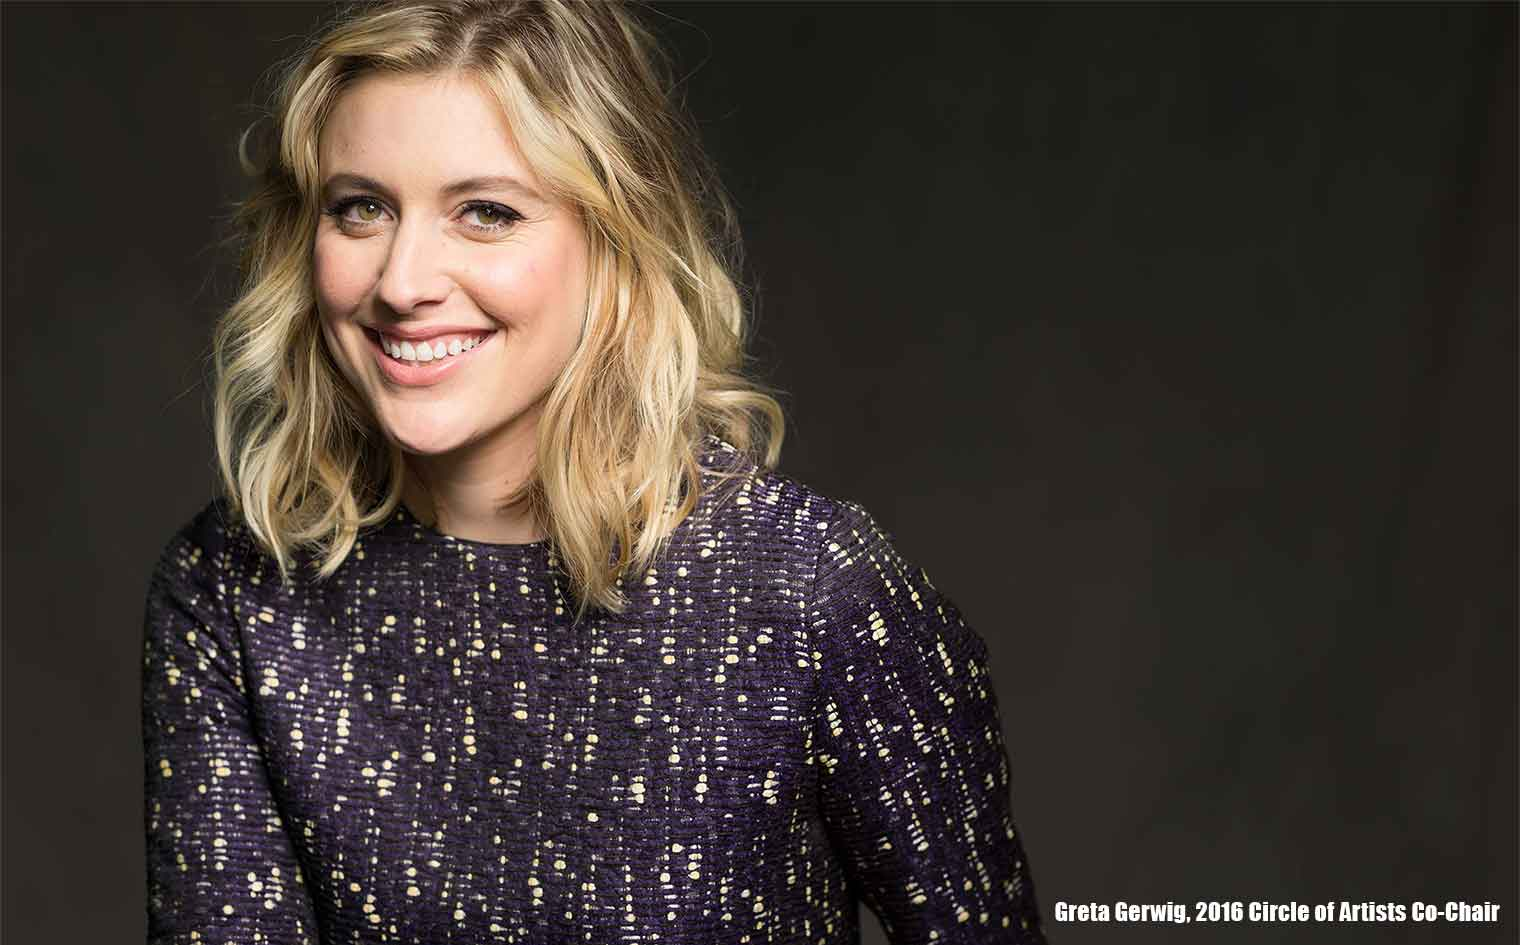 Greta Gerwig, 2016 Circle of Artists Co-Chair